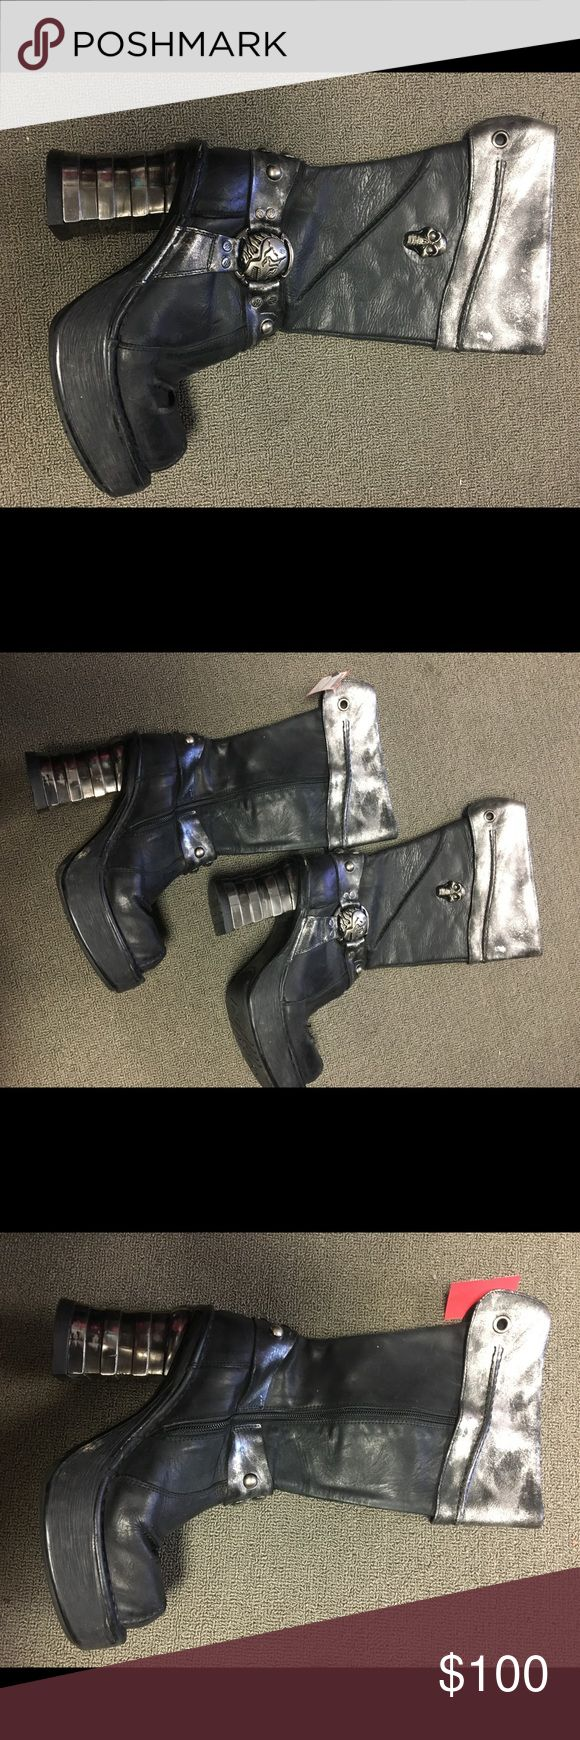 New Rock boots Like new New Rock women's boots size 39. Has 3 inch metal heel with 1 inch platform front. Color is mainly black, has silver around the folded top of the boots. 2 skull emblems adorn each boot. Has square toed style. In great condition! New Rock Shoes Combat & Moto Boots